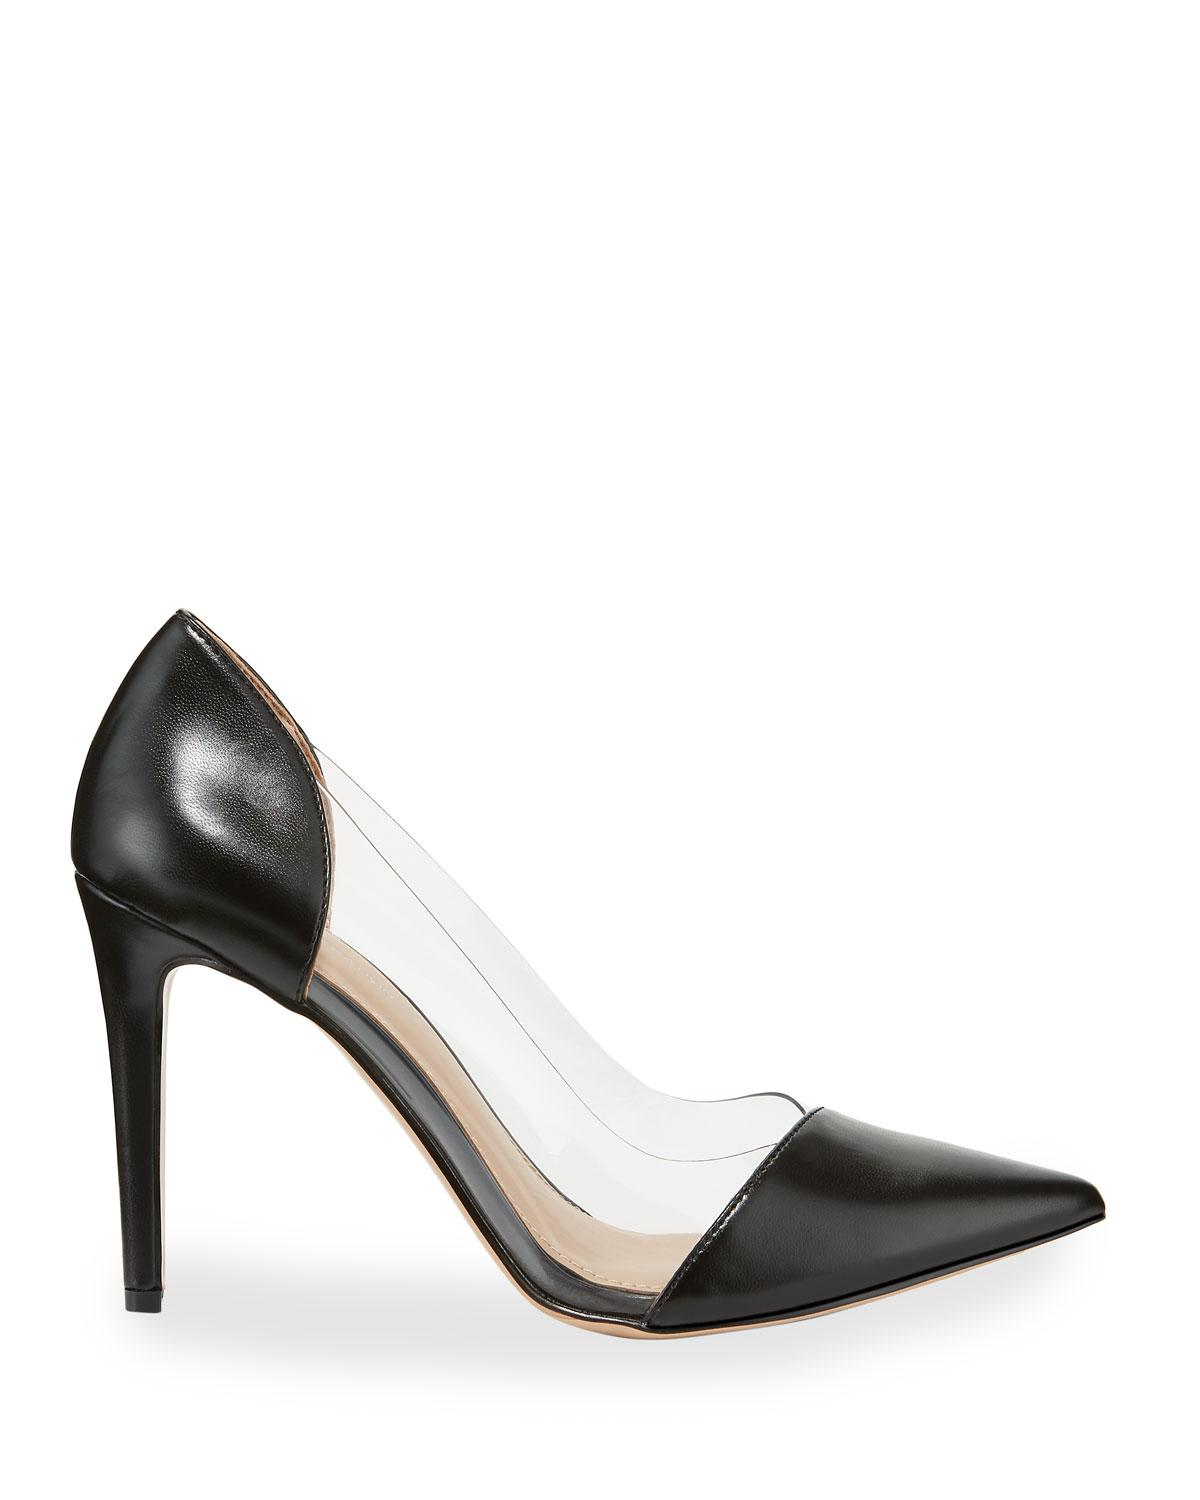 c5d5d264a0f Lyst - BCBGeneration Lana Clear-sided Pointed-toe Pumps in Black